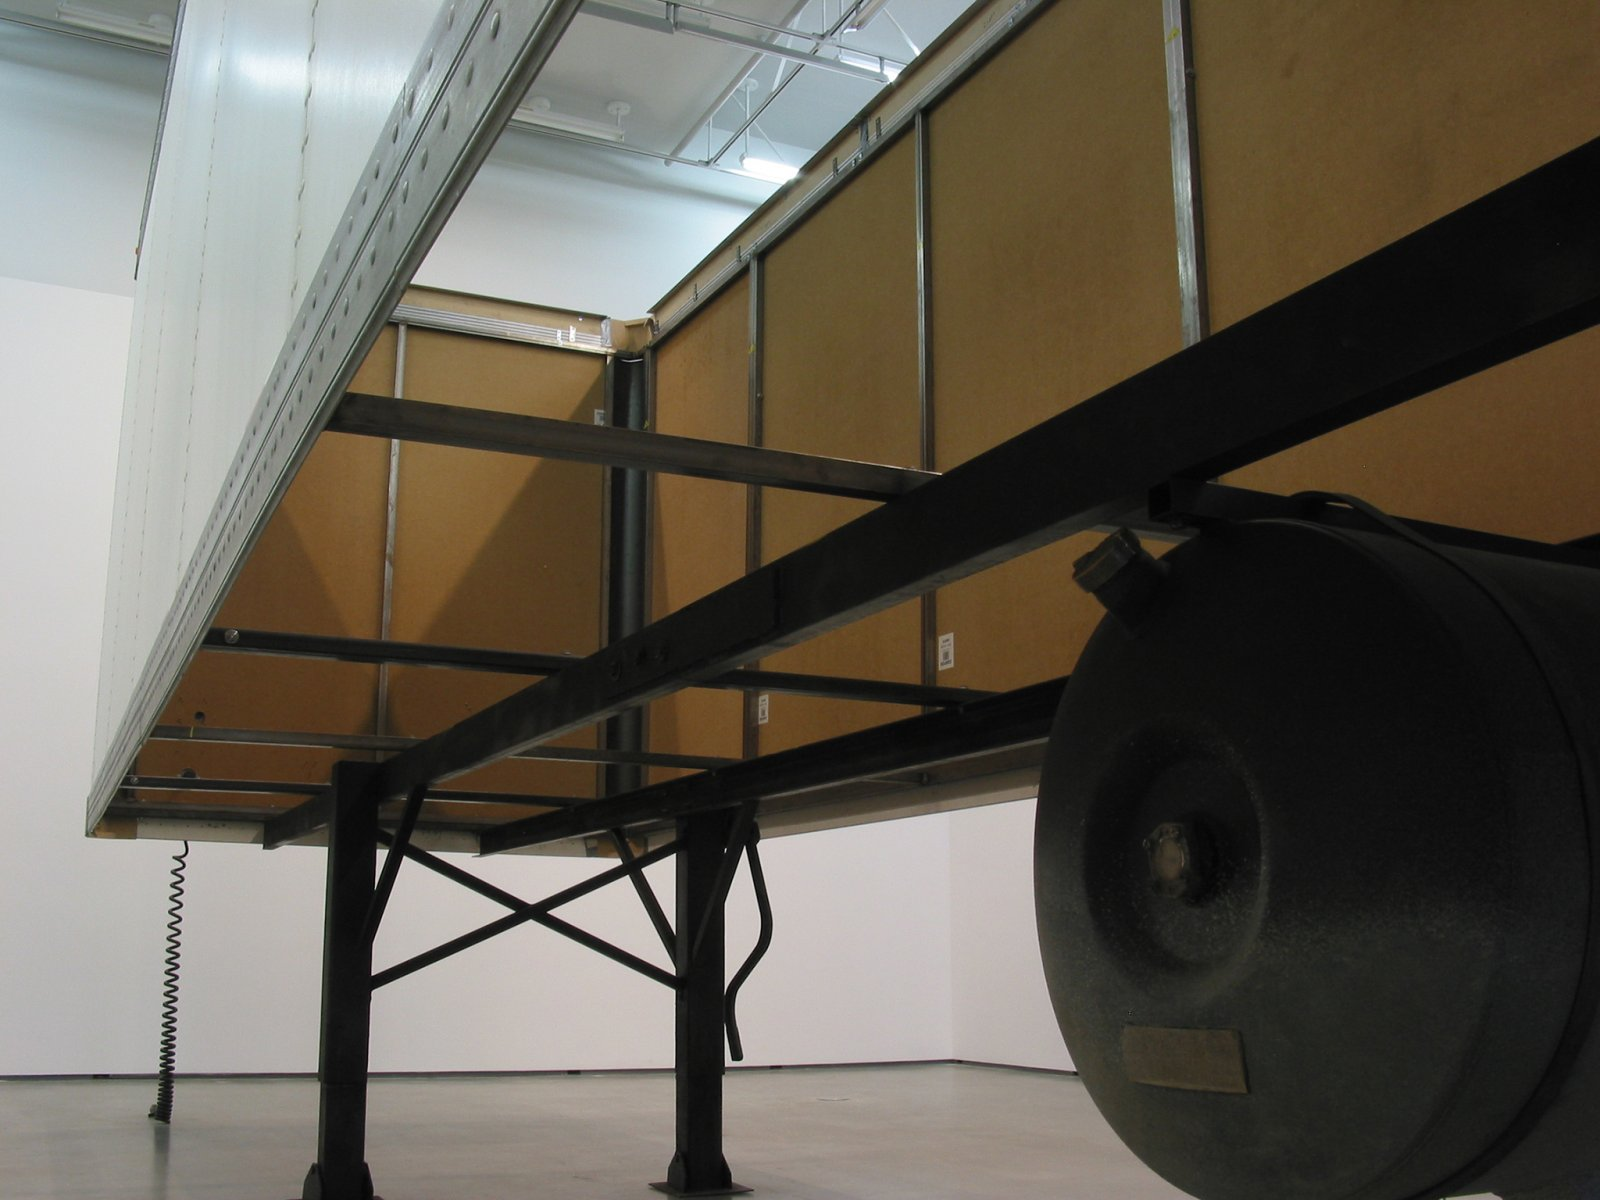 ​Geoffrey Farmer, Trailer, 2002, steel, fiberboard, mixed media, 134 x 87 x 354 in. (340 x 220 x 900 cm). Installation view, The Blacking Factory, Contemporary Art Gallery, Vancouver, 2002​ by Geoffrey Farmer